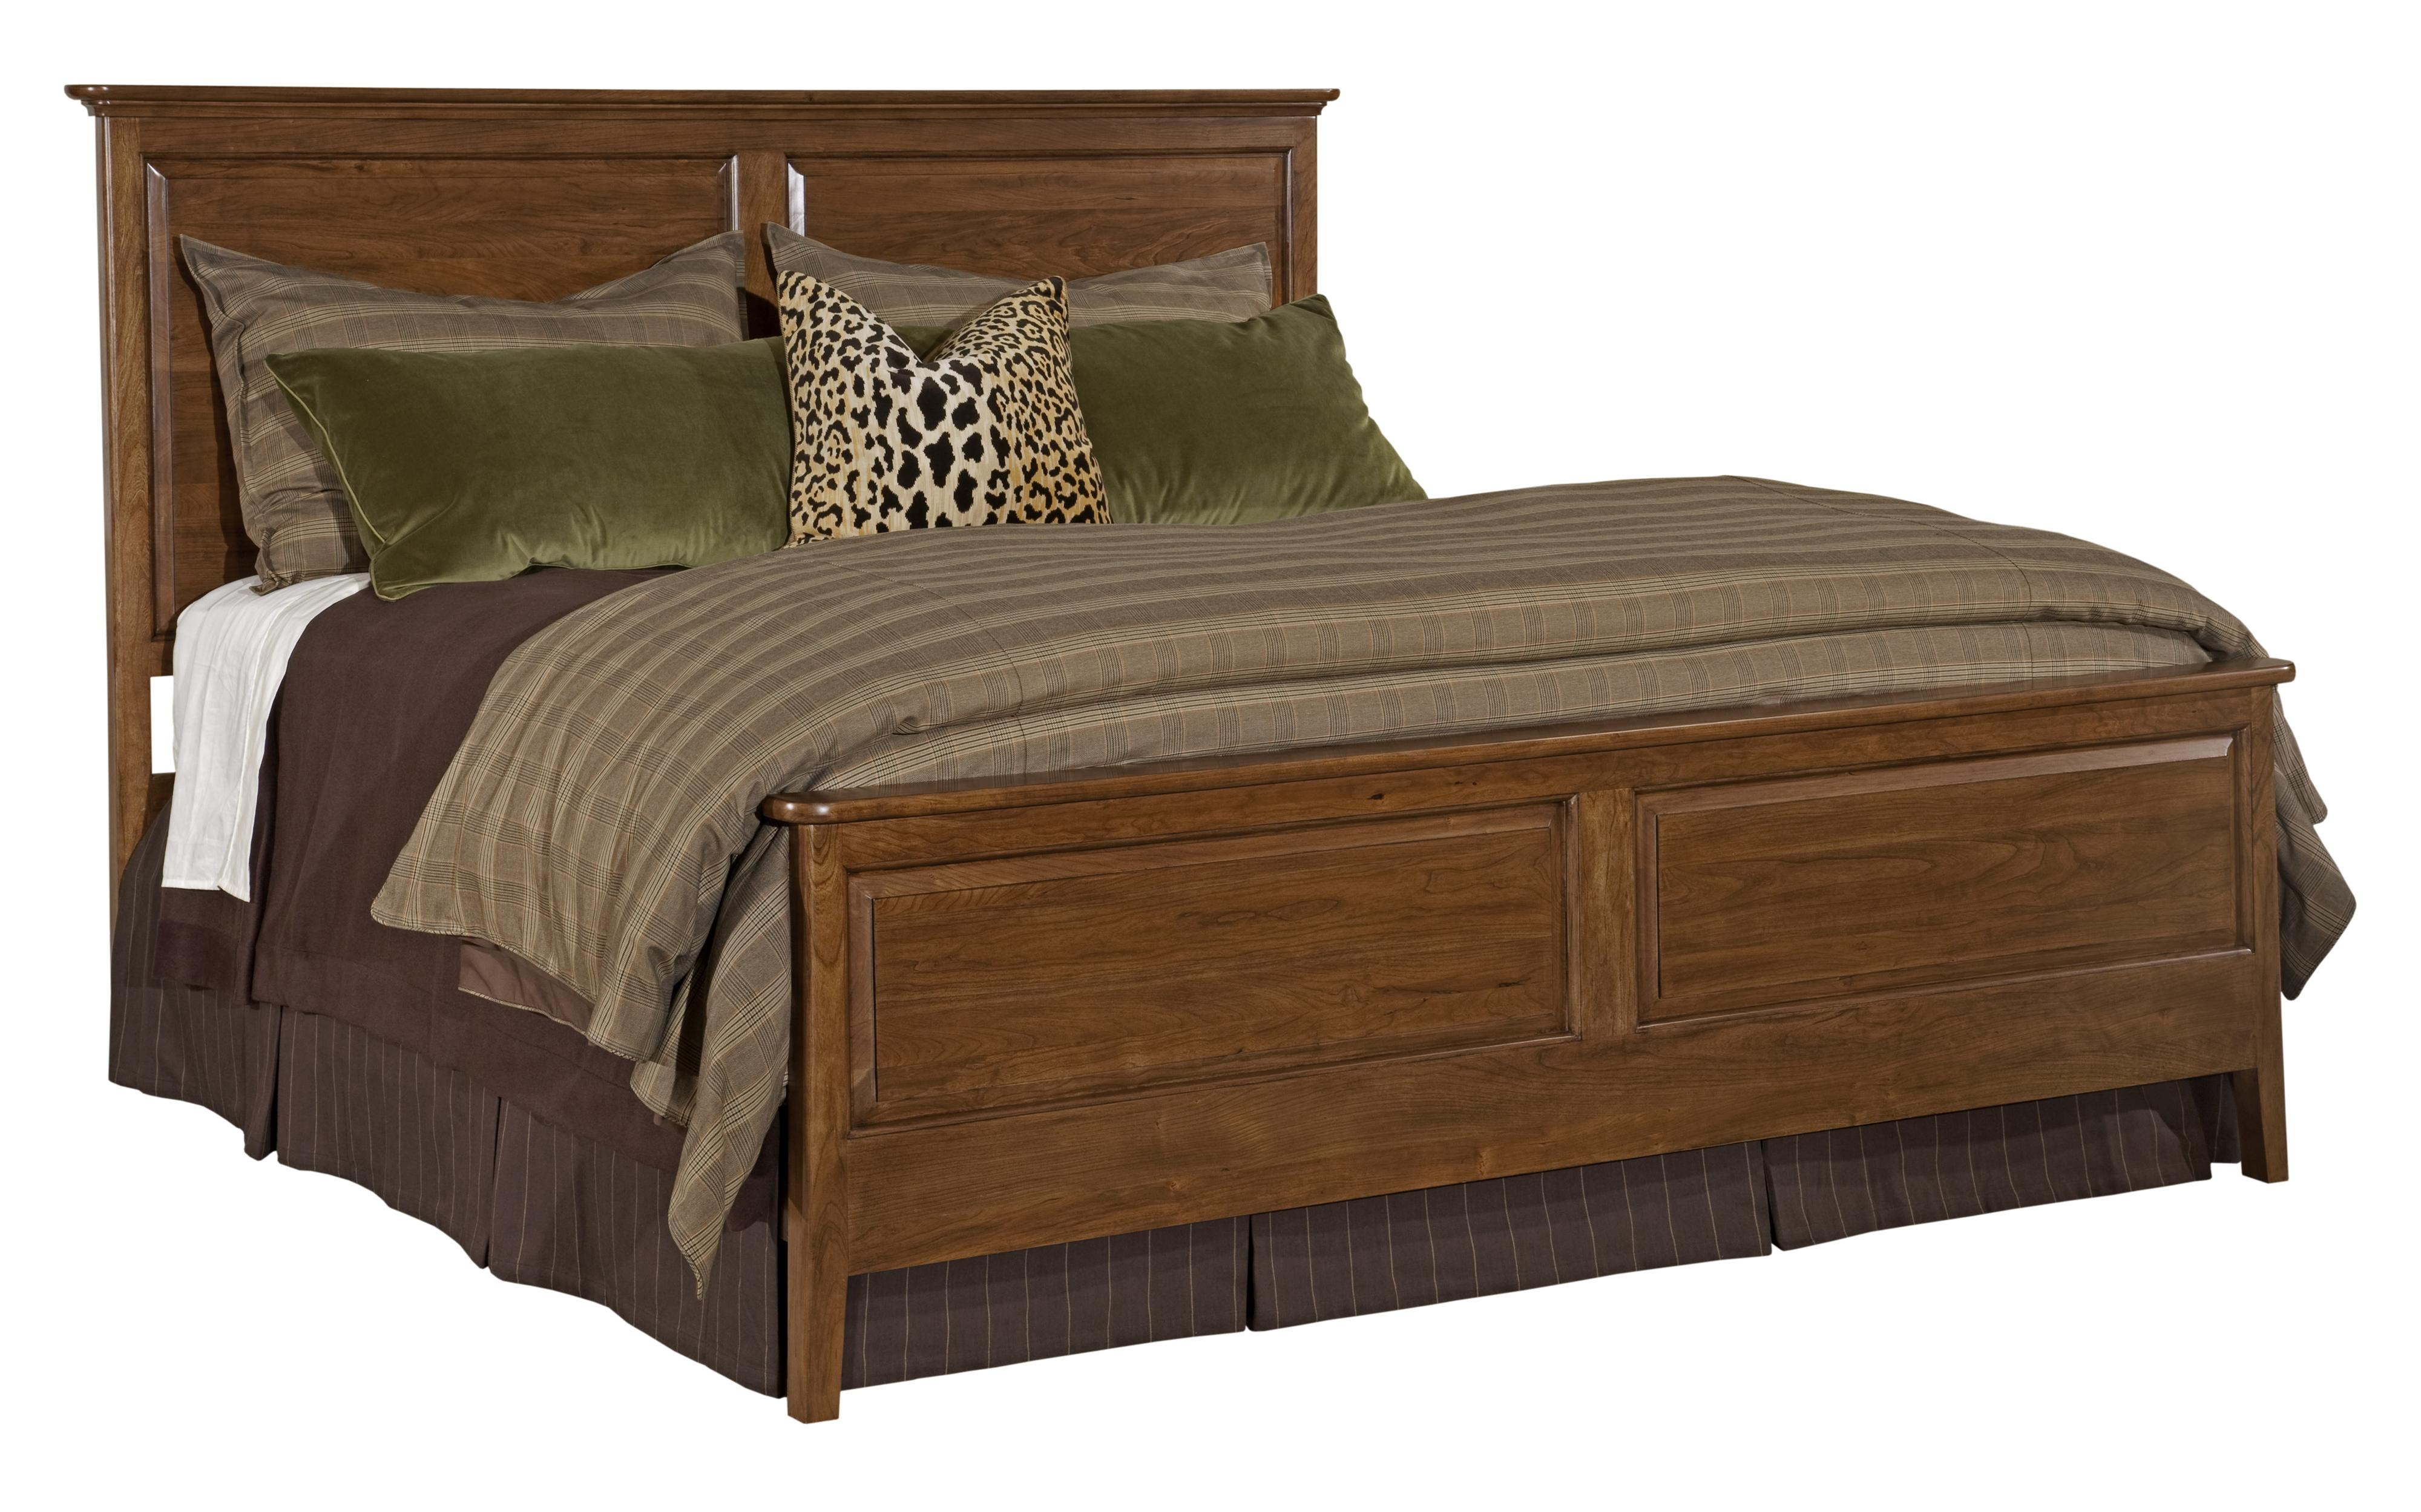 Cherry Park King Panel Bed by Kincaid Furniture at Northeast Factory Direct